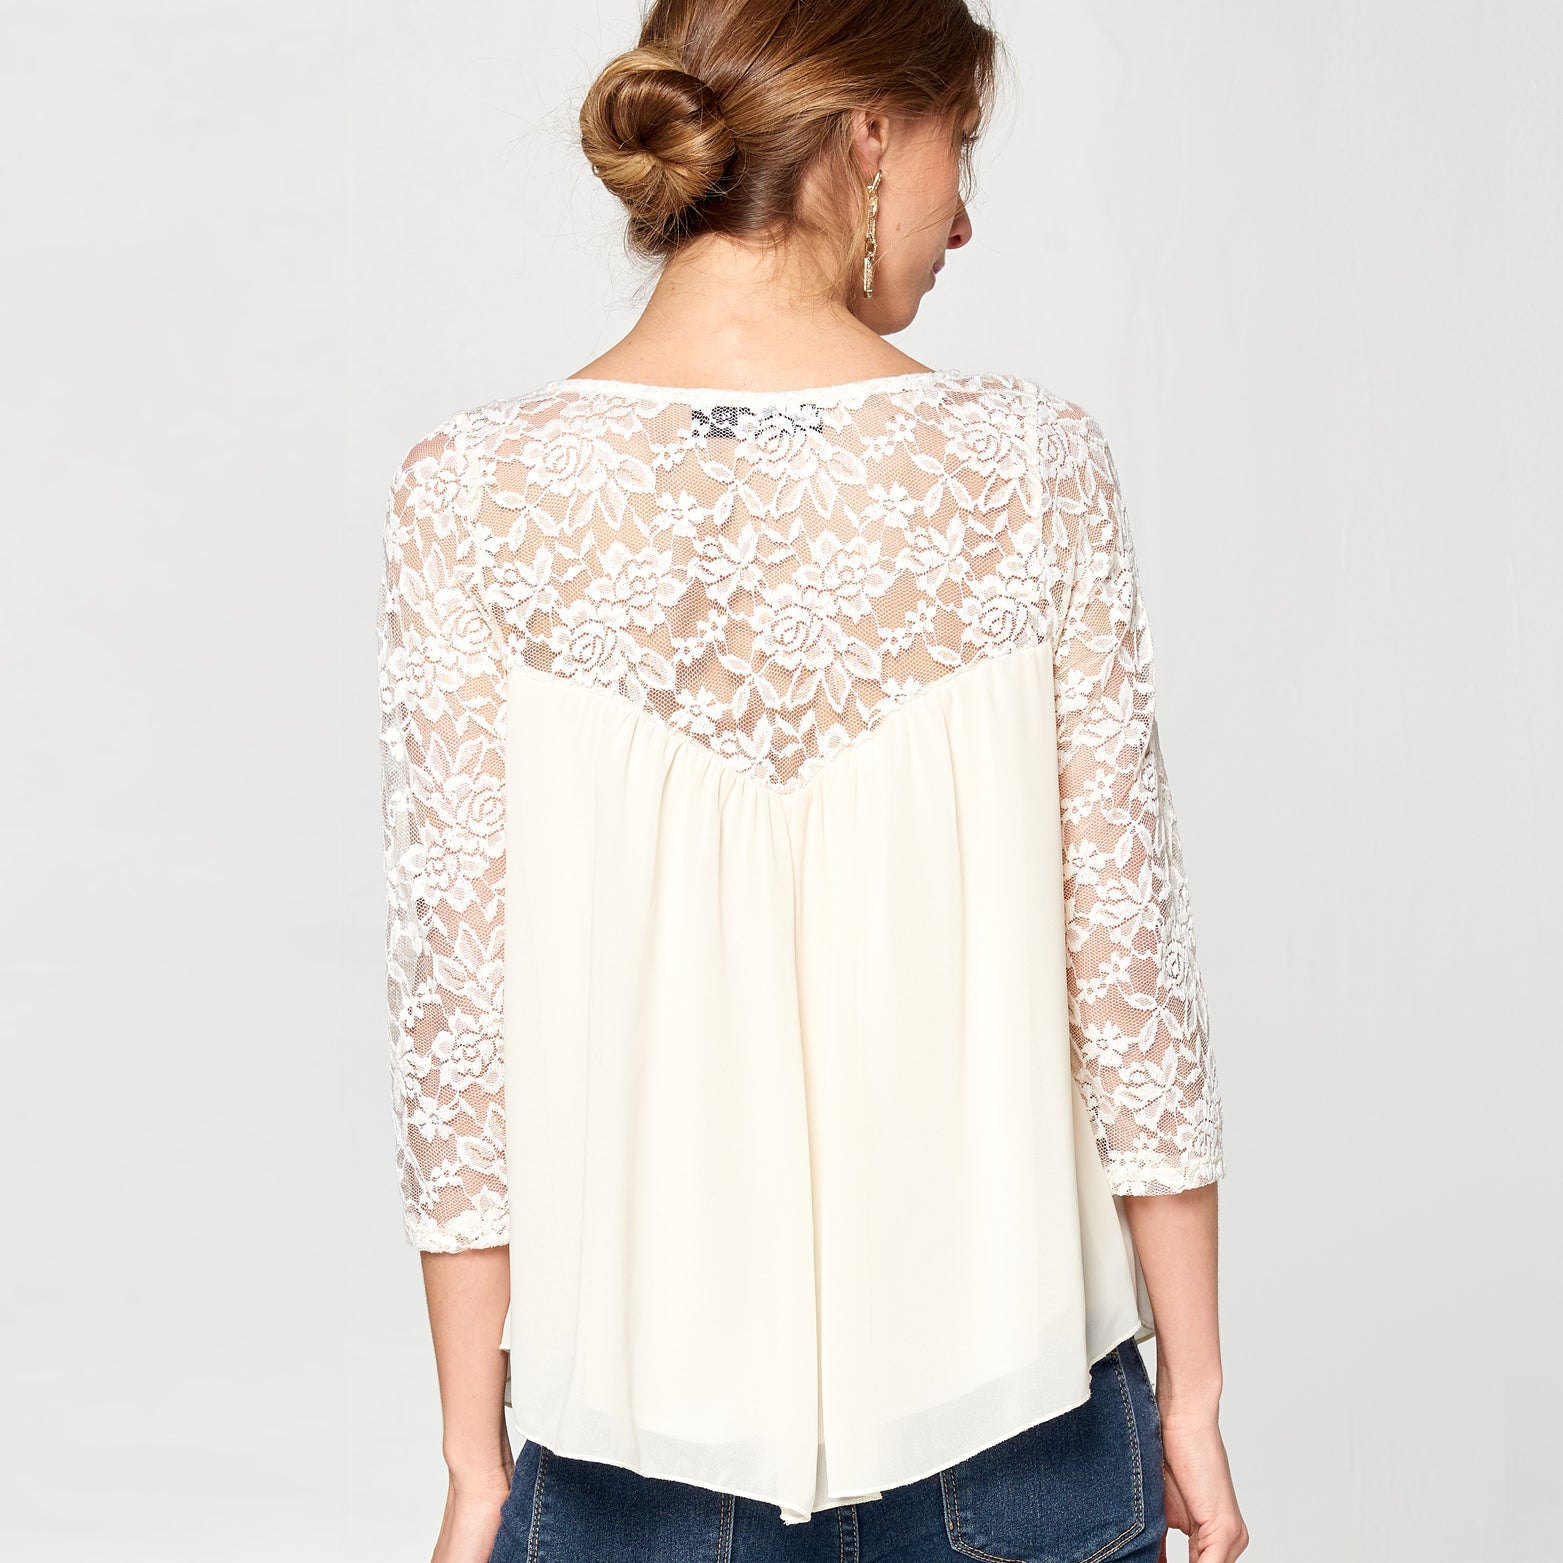 Lace Yoke Chiffon Top